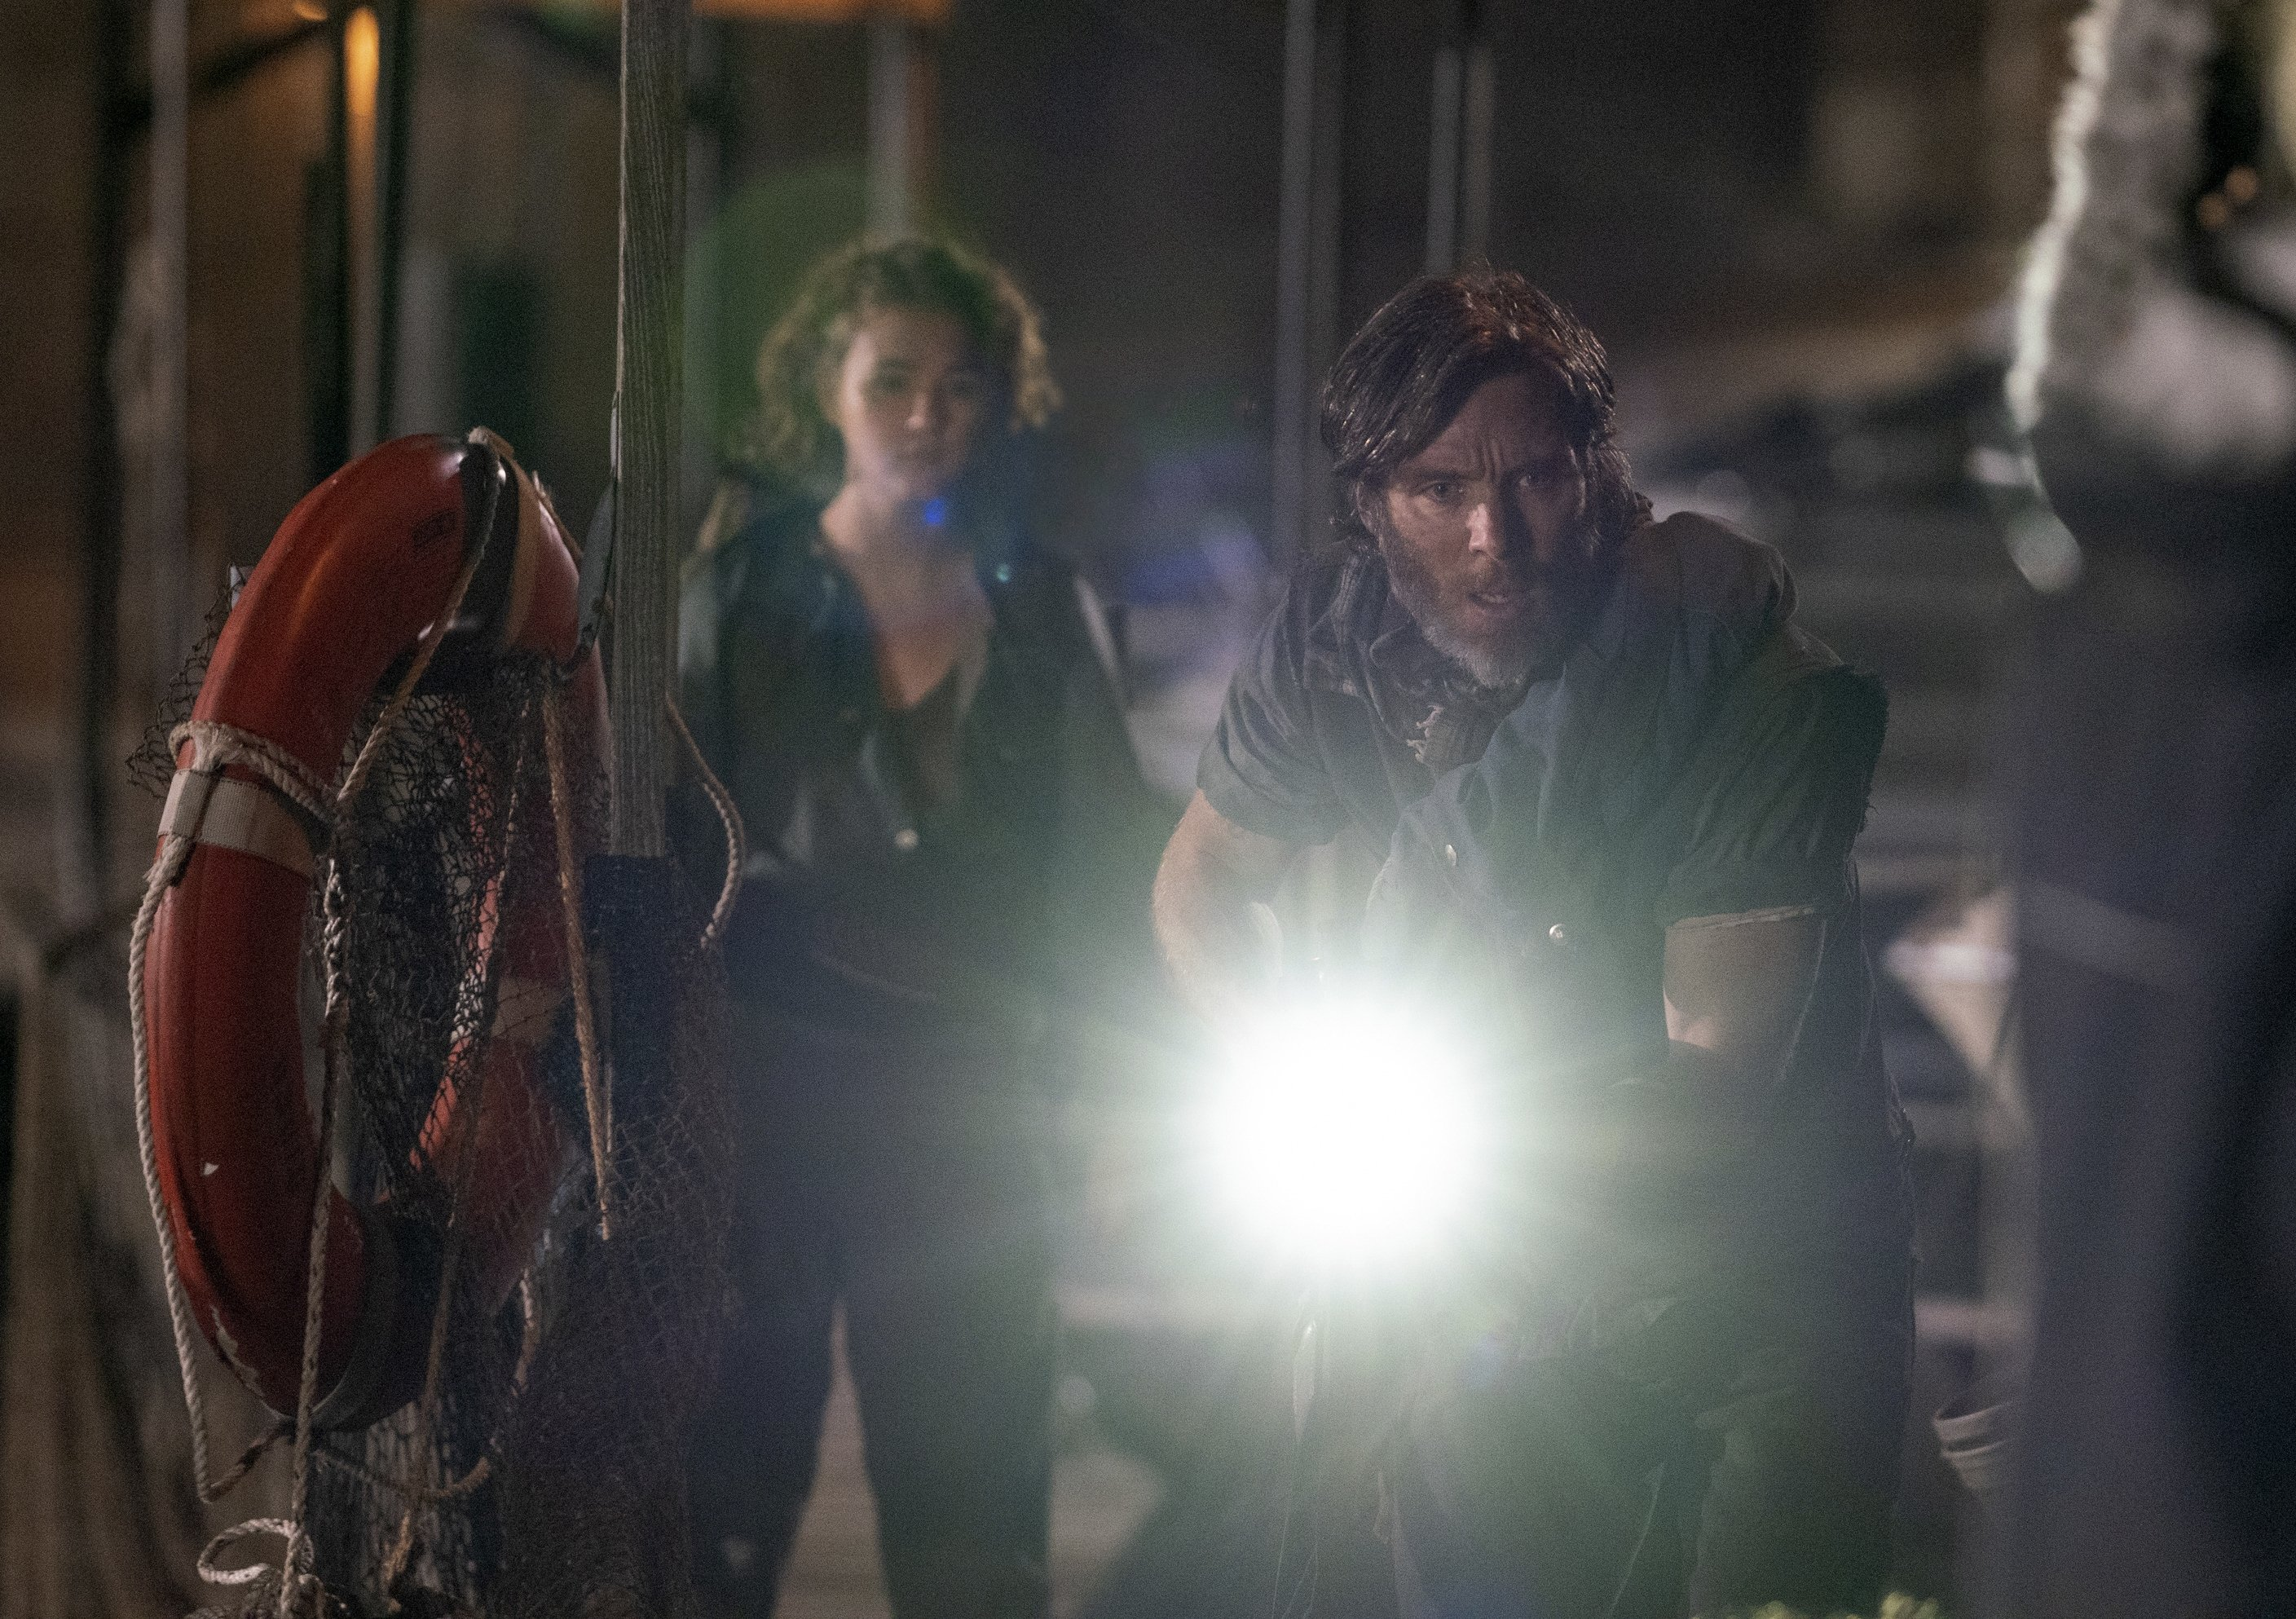 Millicent Simmonds (L) and Cillian Murphy (R) who is holding a flaslight attached to weapon, walk through an abandoned location,in a scene from'A Quiet Place Part II.' (Paramount Pictures via AP)